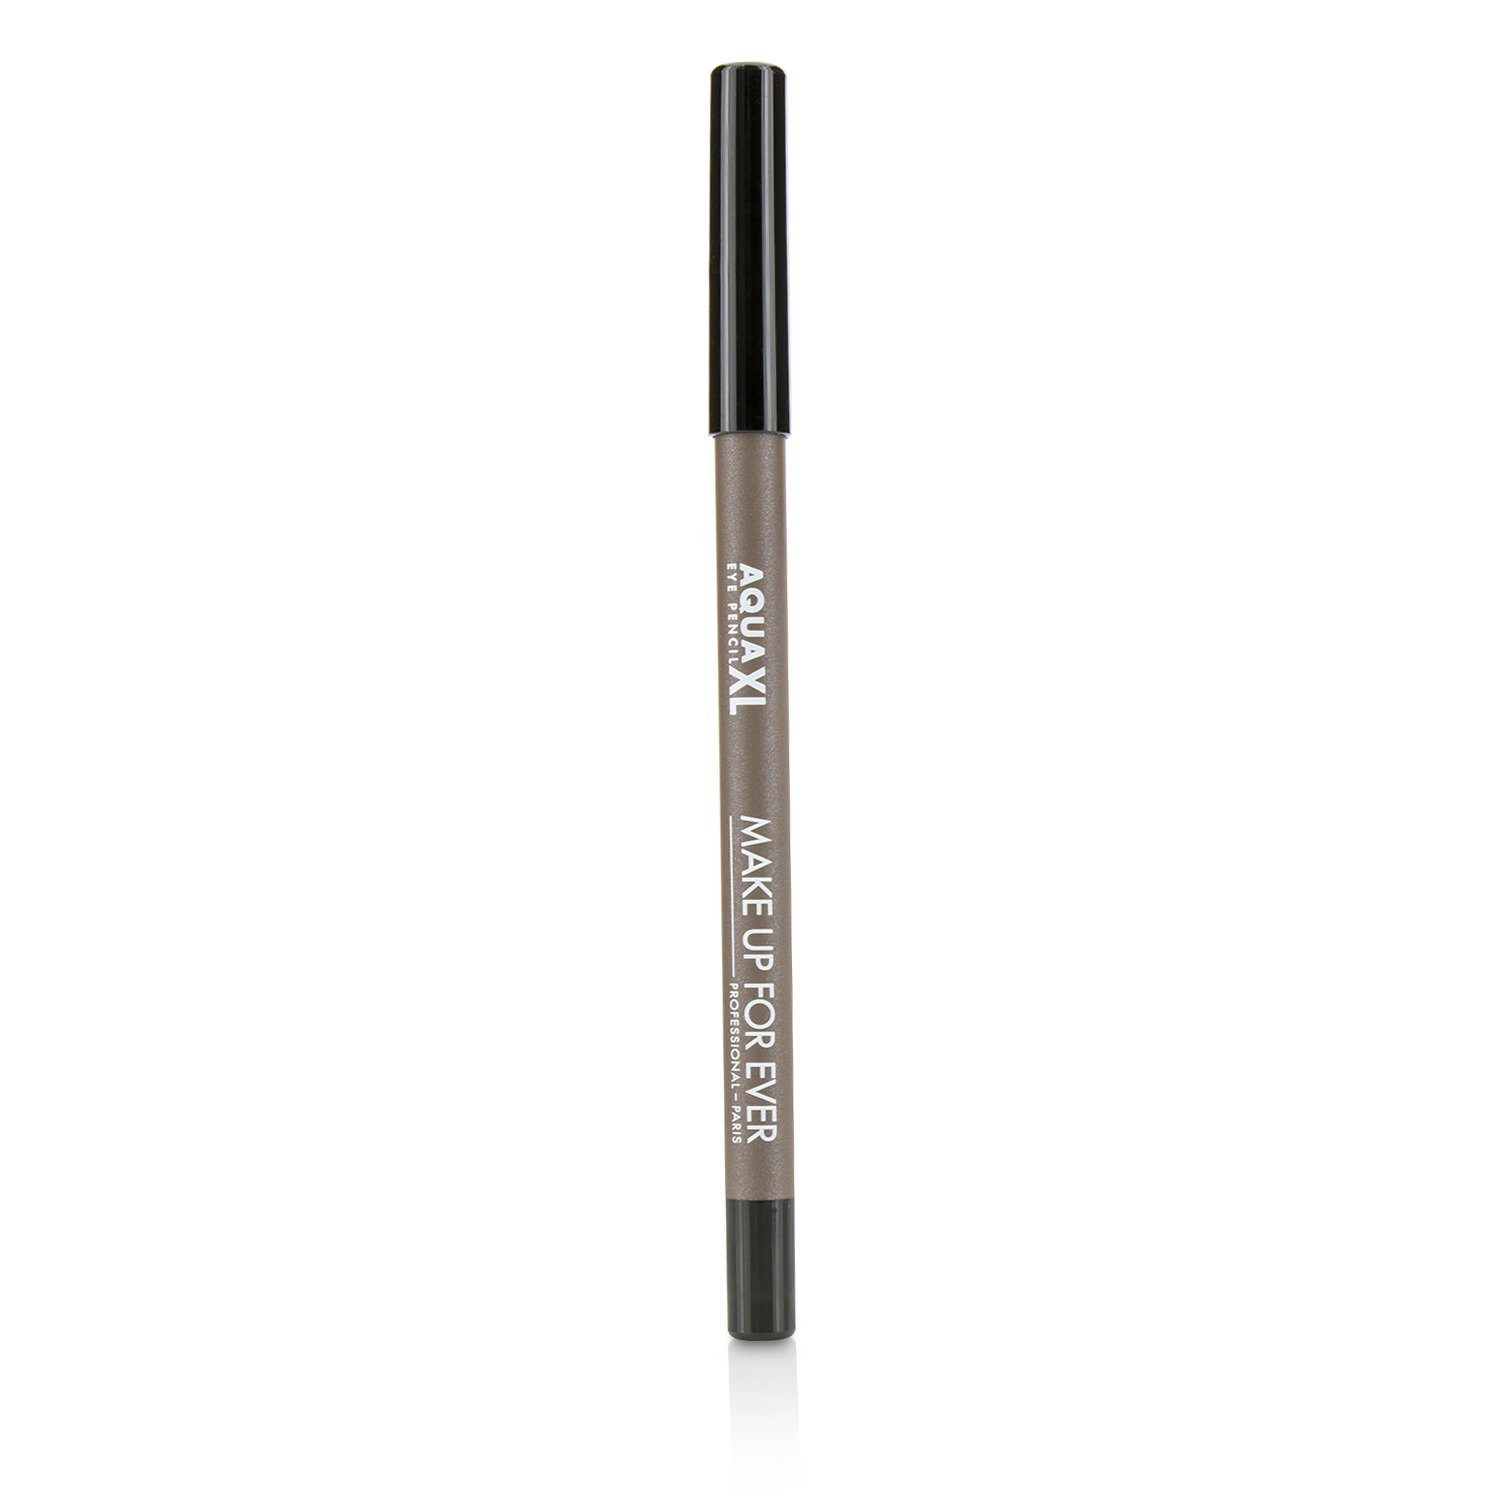 Make-Up-For-Ever-Aqua-XL-Extra-Long-Lasting-Waterproof-Eye-Pencil